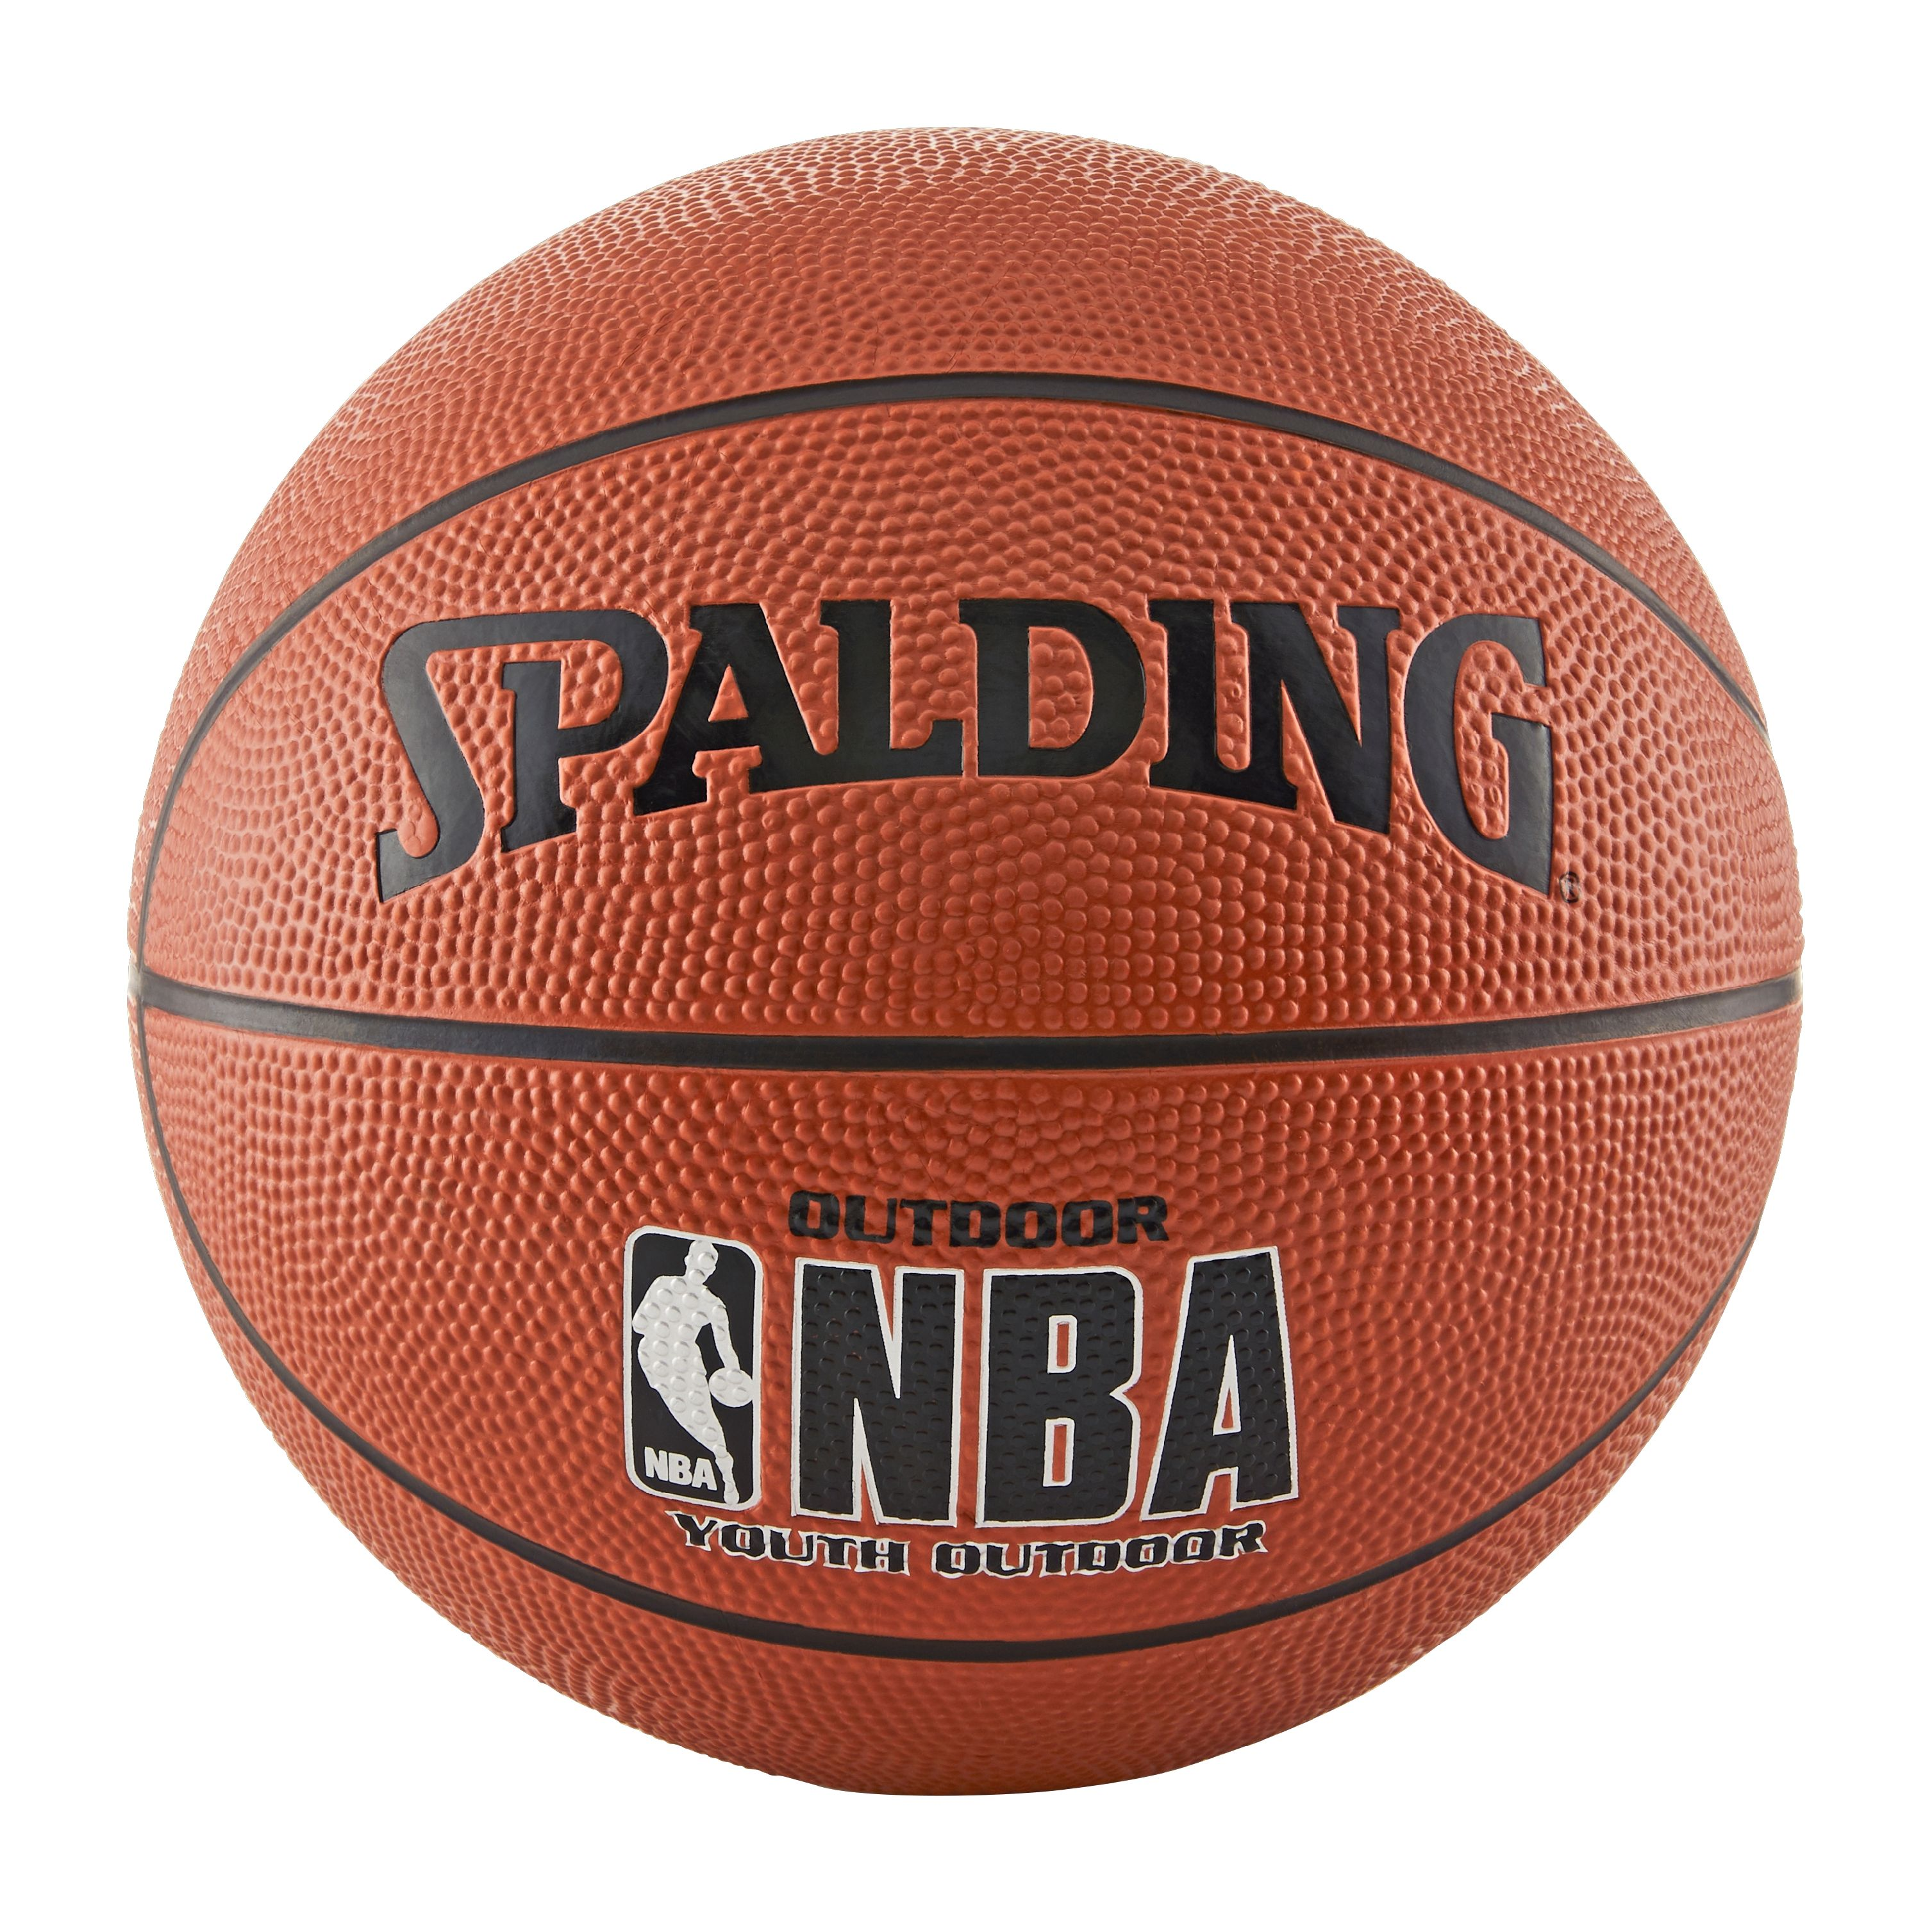 "Spalding NBA Varsity Basketball, Youth Size (27.5"")"